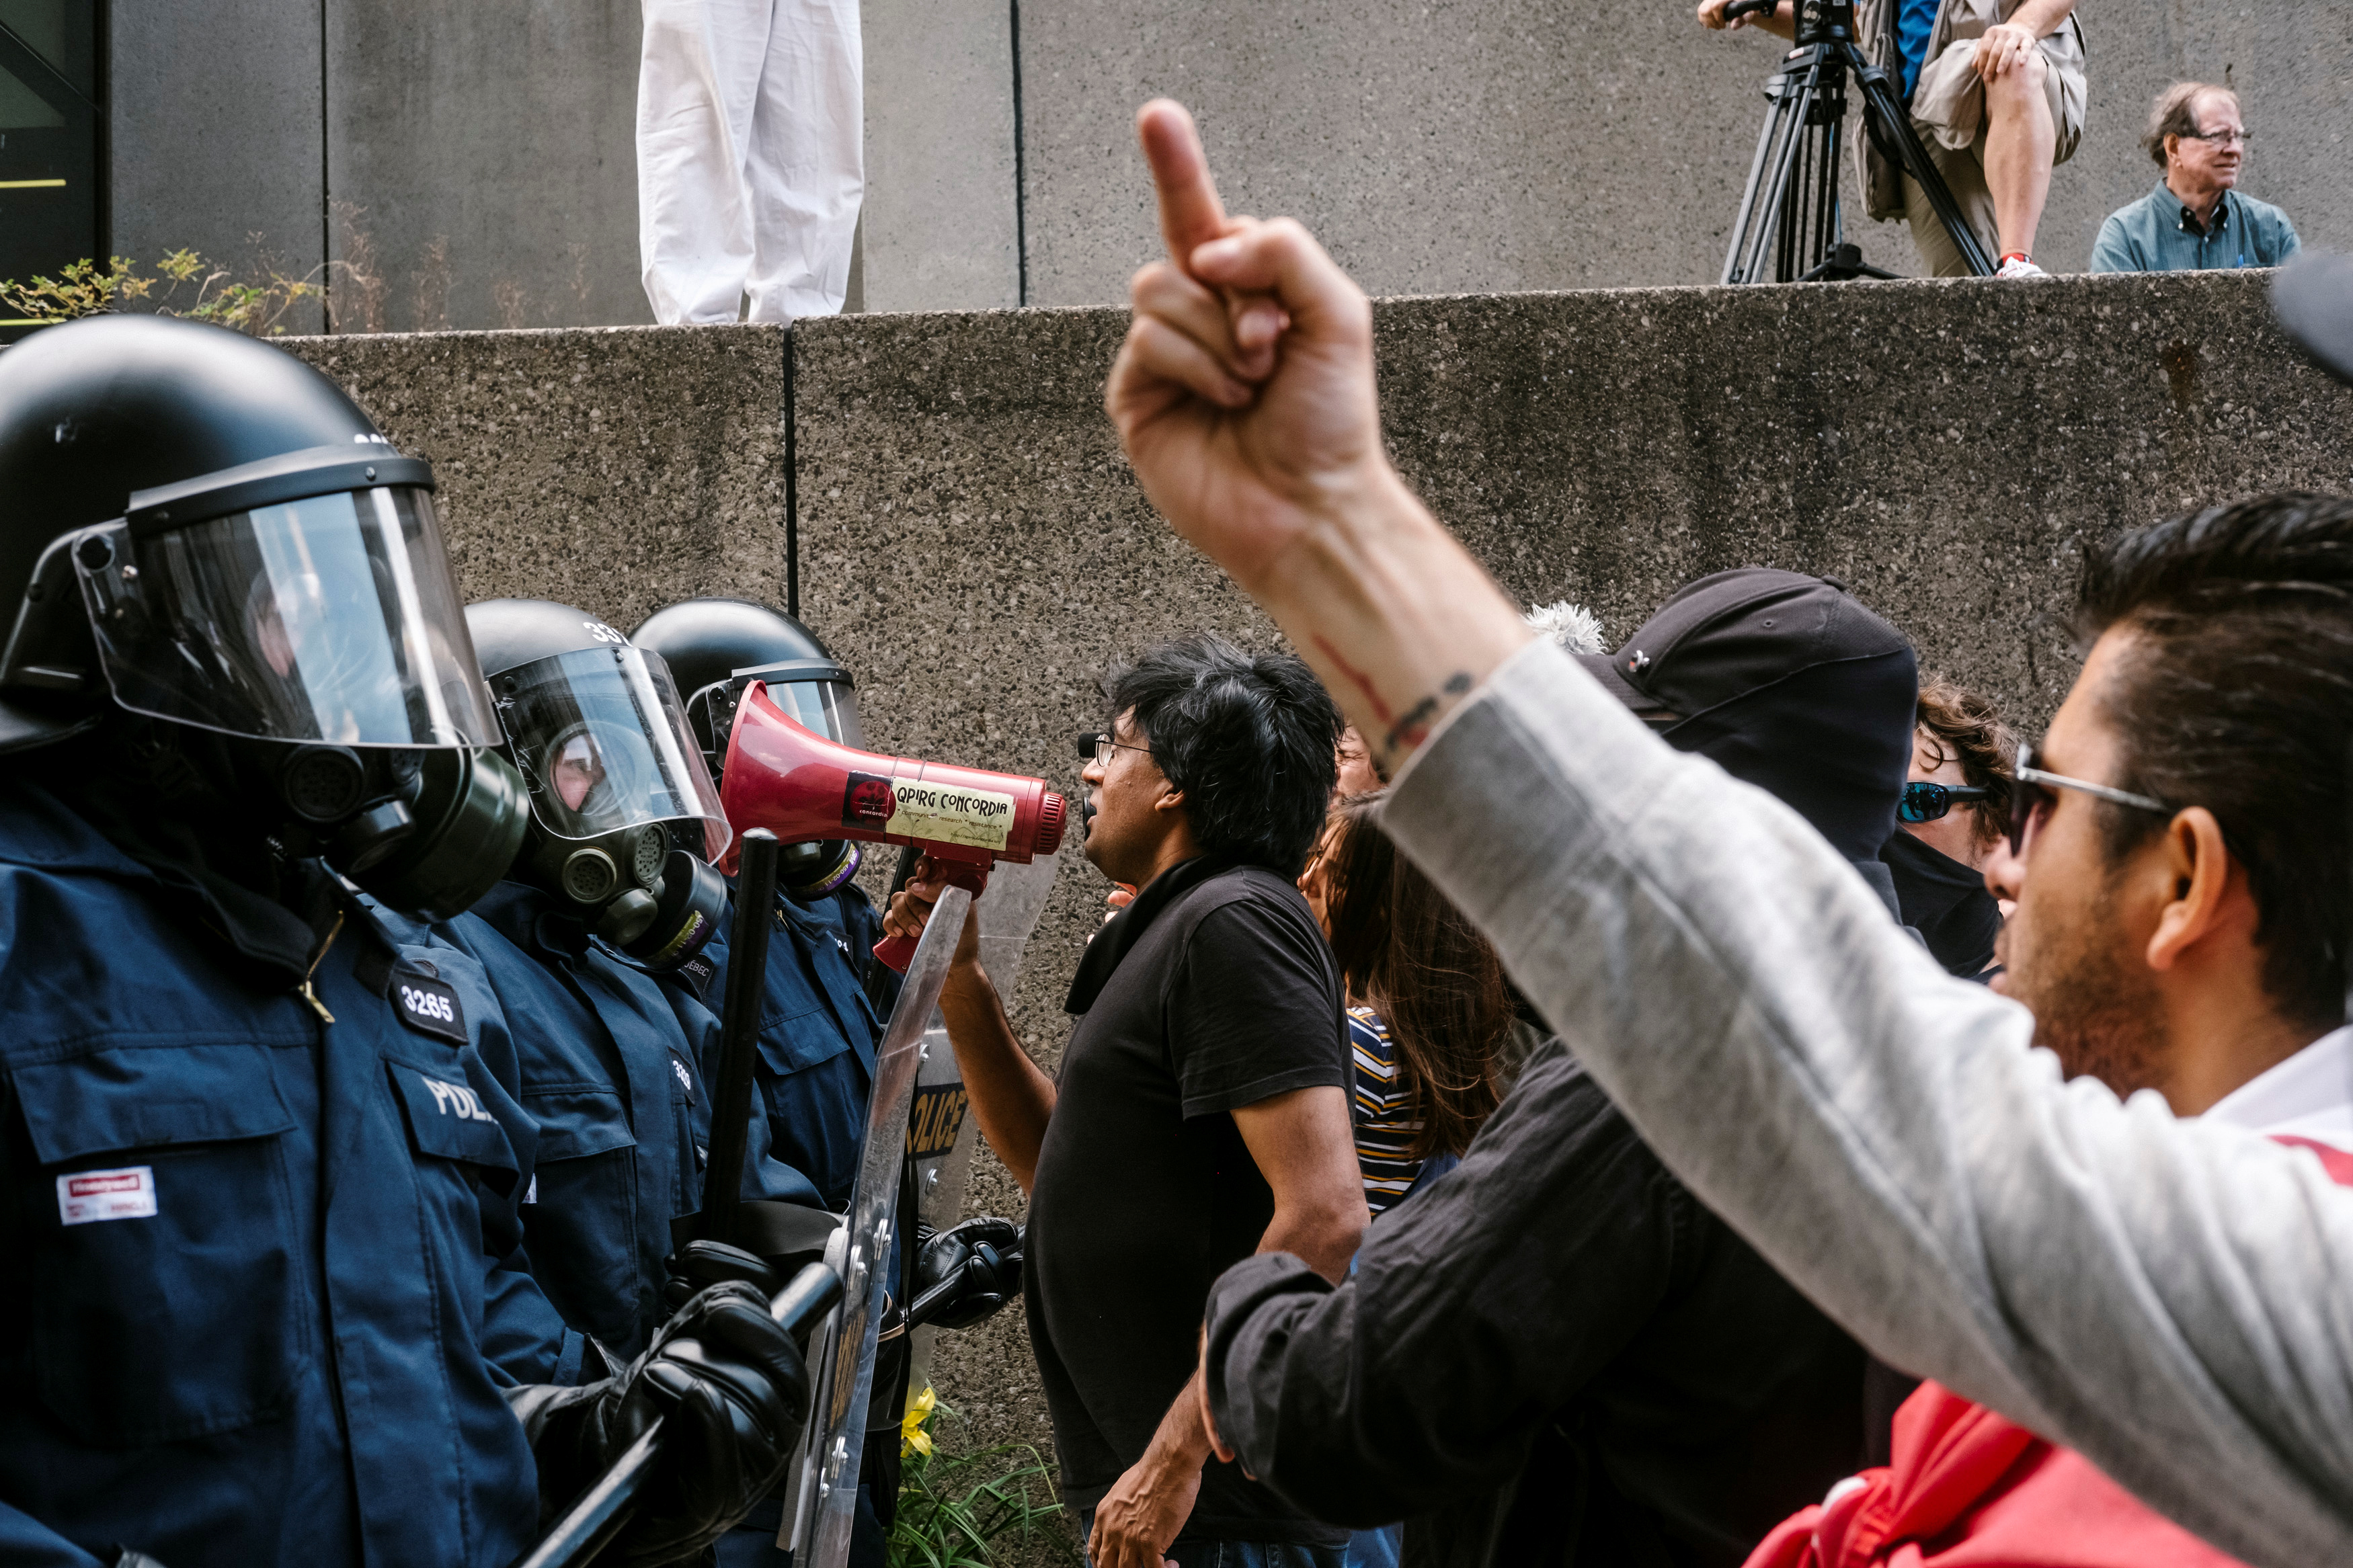 """A Quebec City """"anti-fascist"""" counter-demonstration turned violent Sunday as local police had to wear riot gear to quell the public disturbance."""